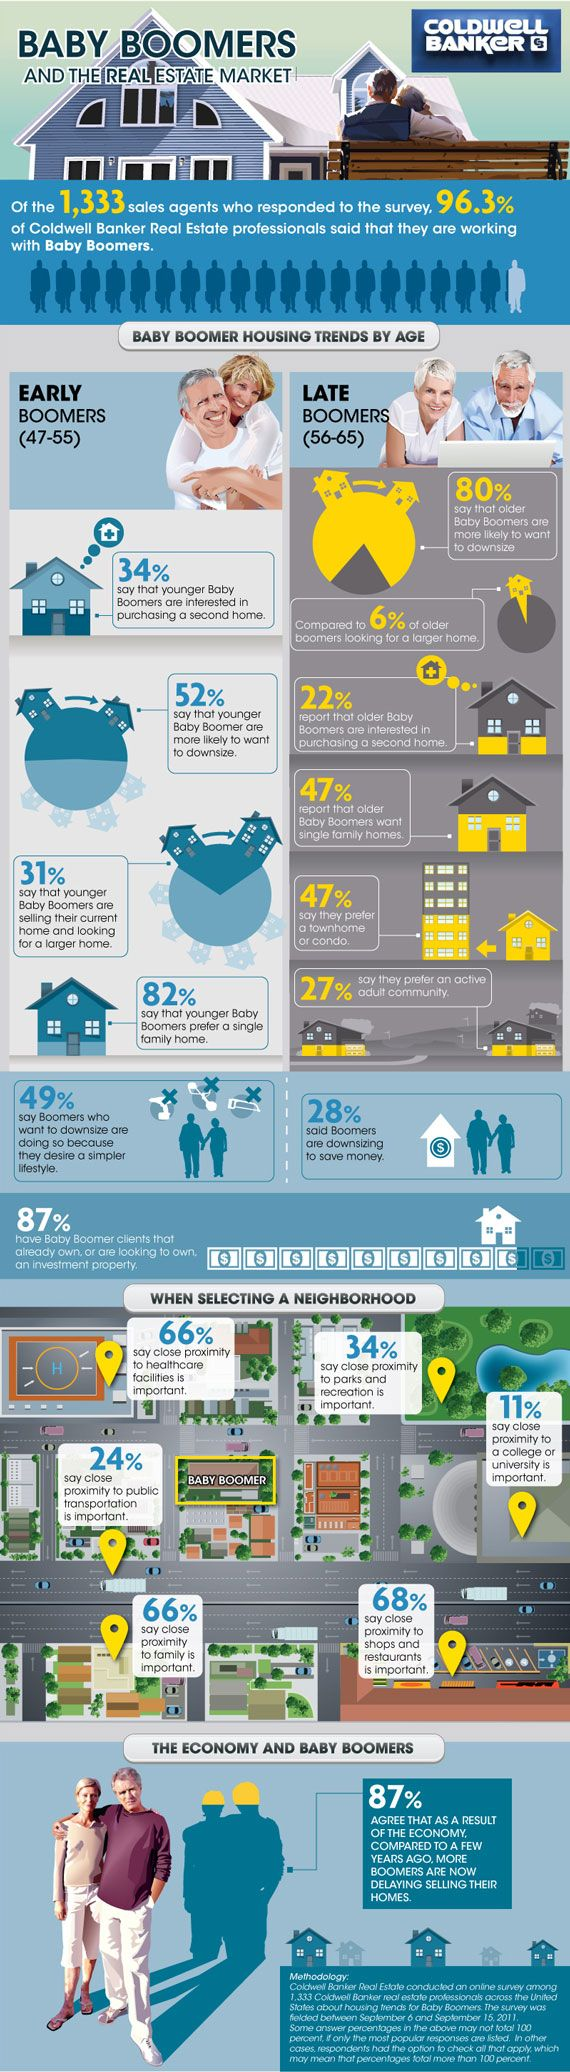 A cool look at real estate and Baby Boomers.  This real estate infographic compares what early and late boomers are looking for when choosing their next home.